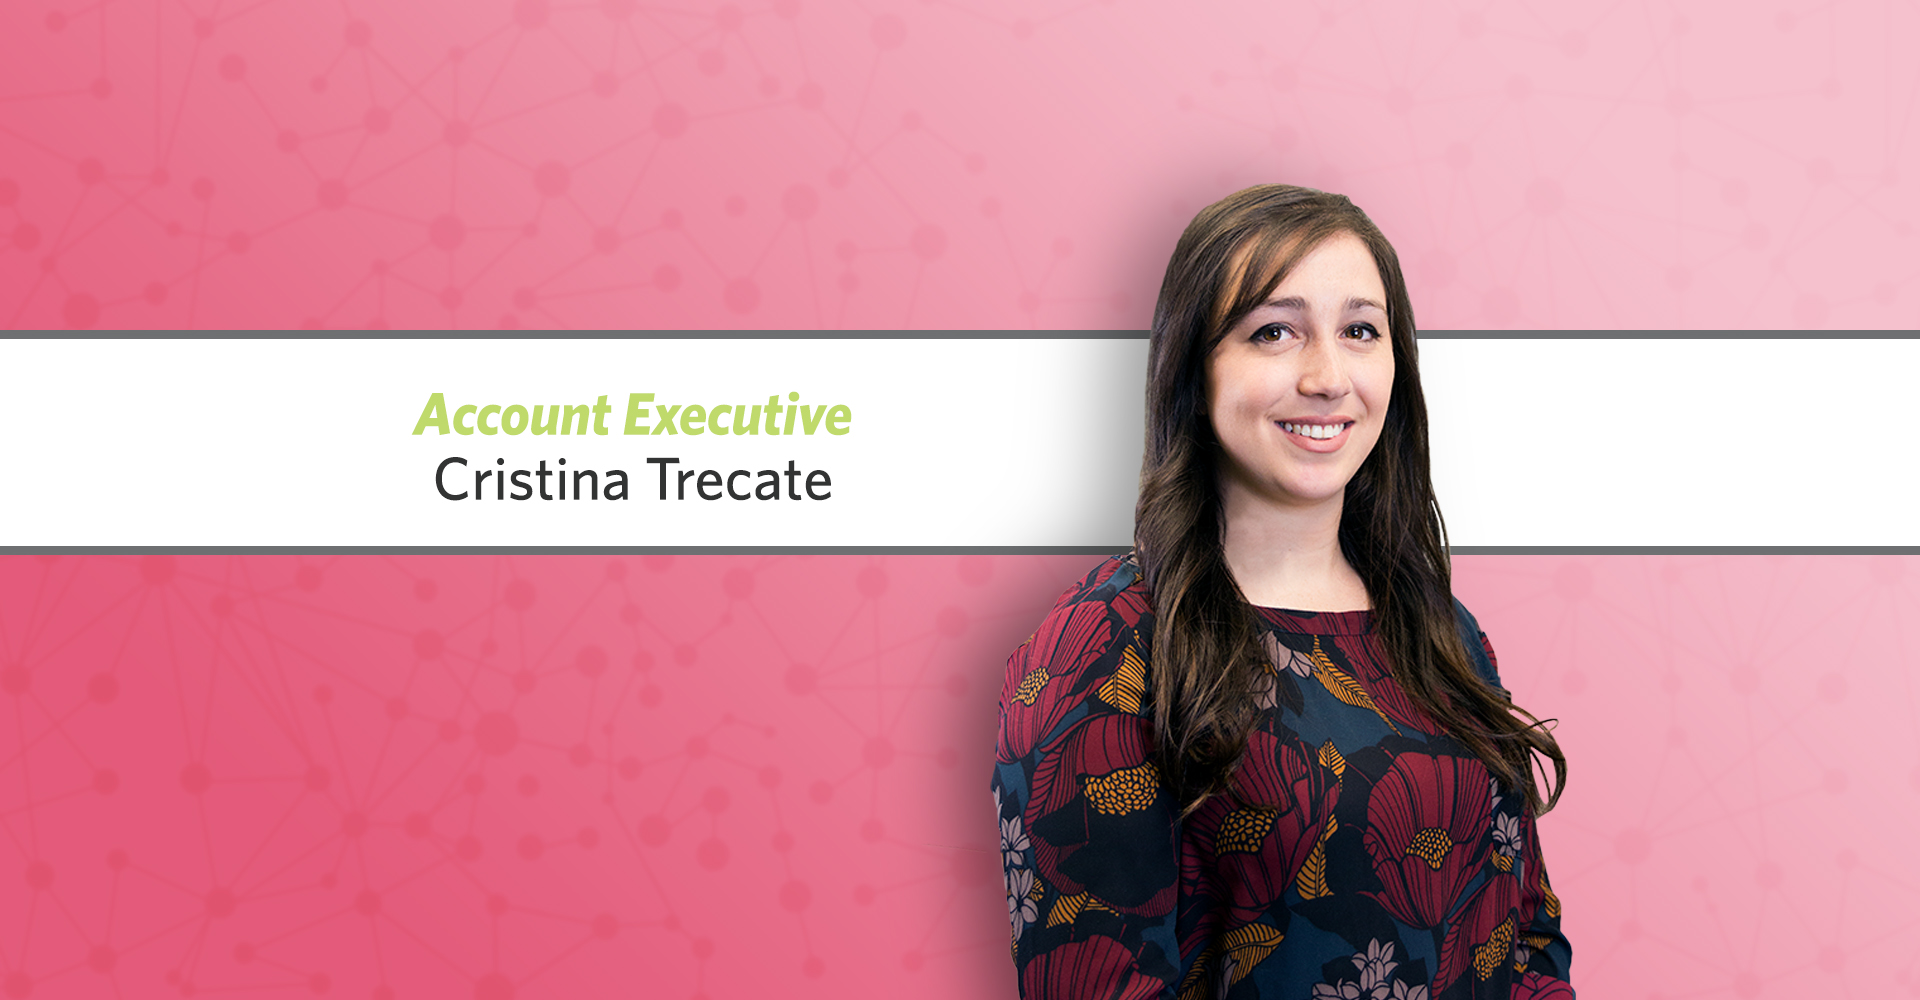 Cristina Trecate Joins The Agency as Account Executive